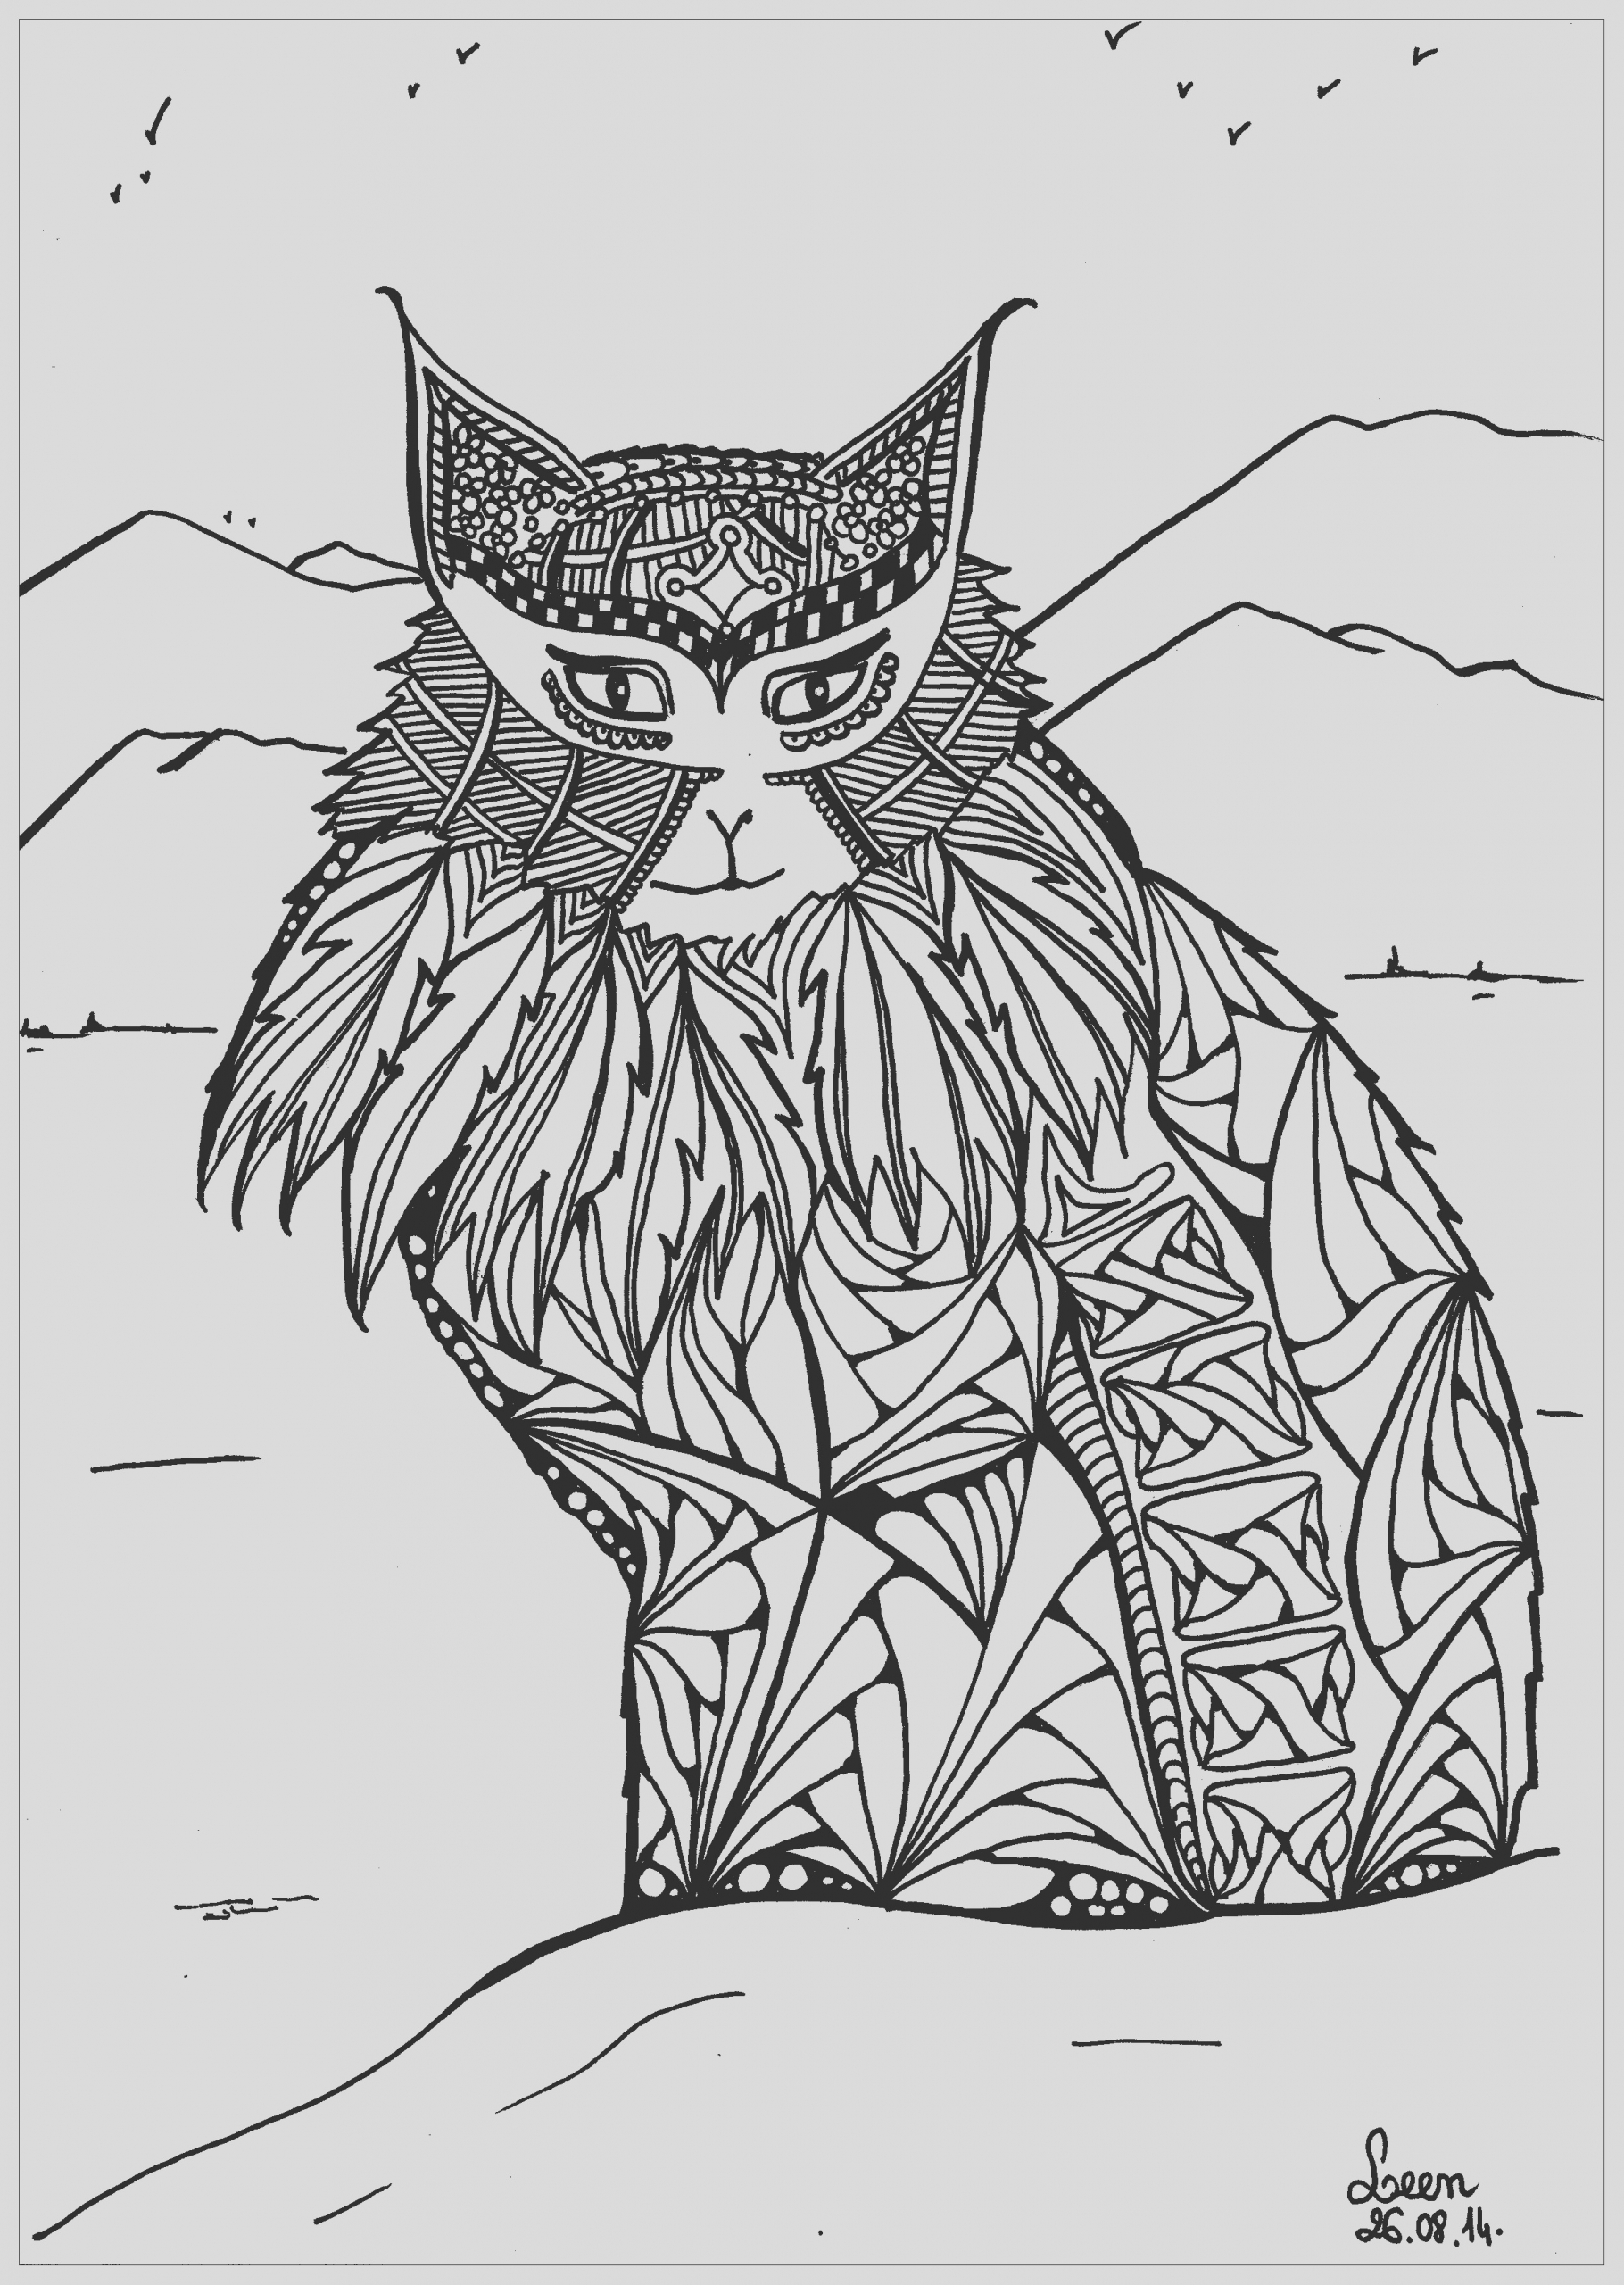 image=cats coloring adult leen margot mountains cat 3